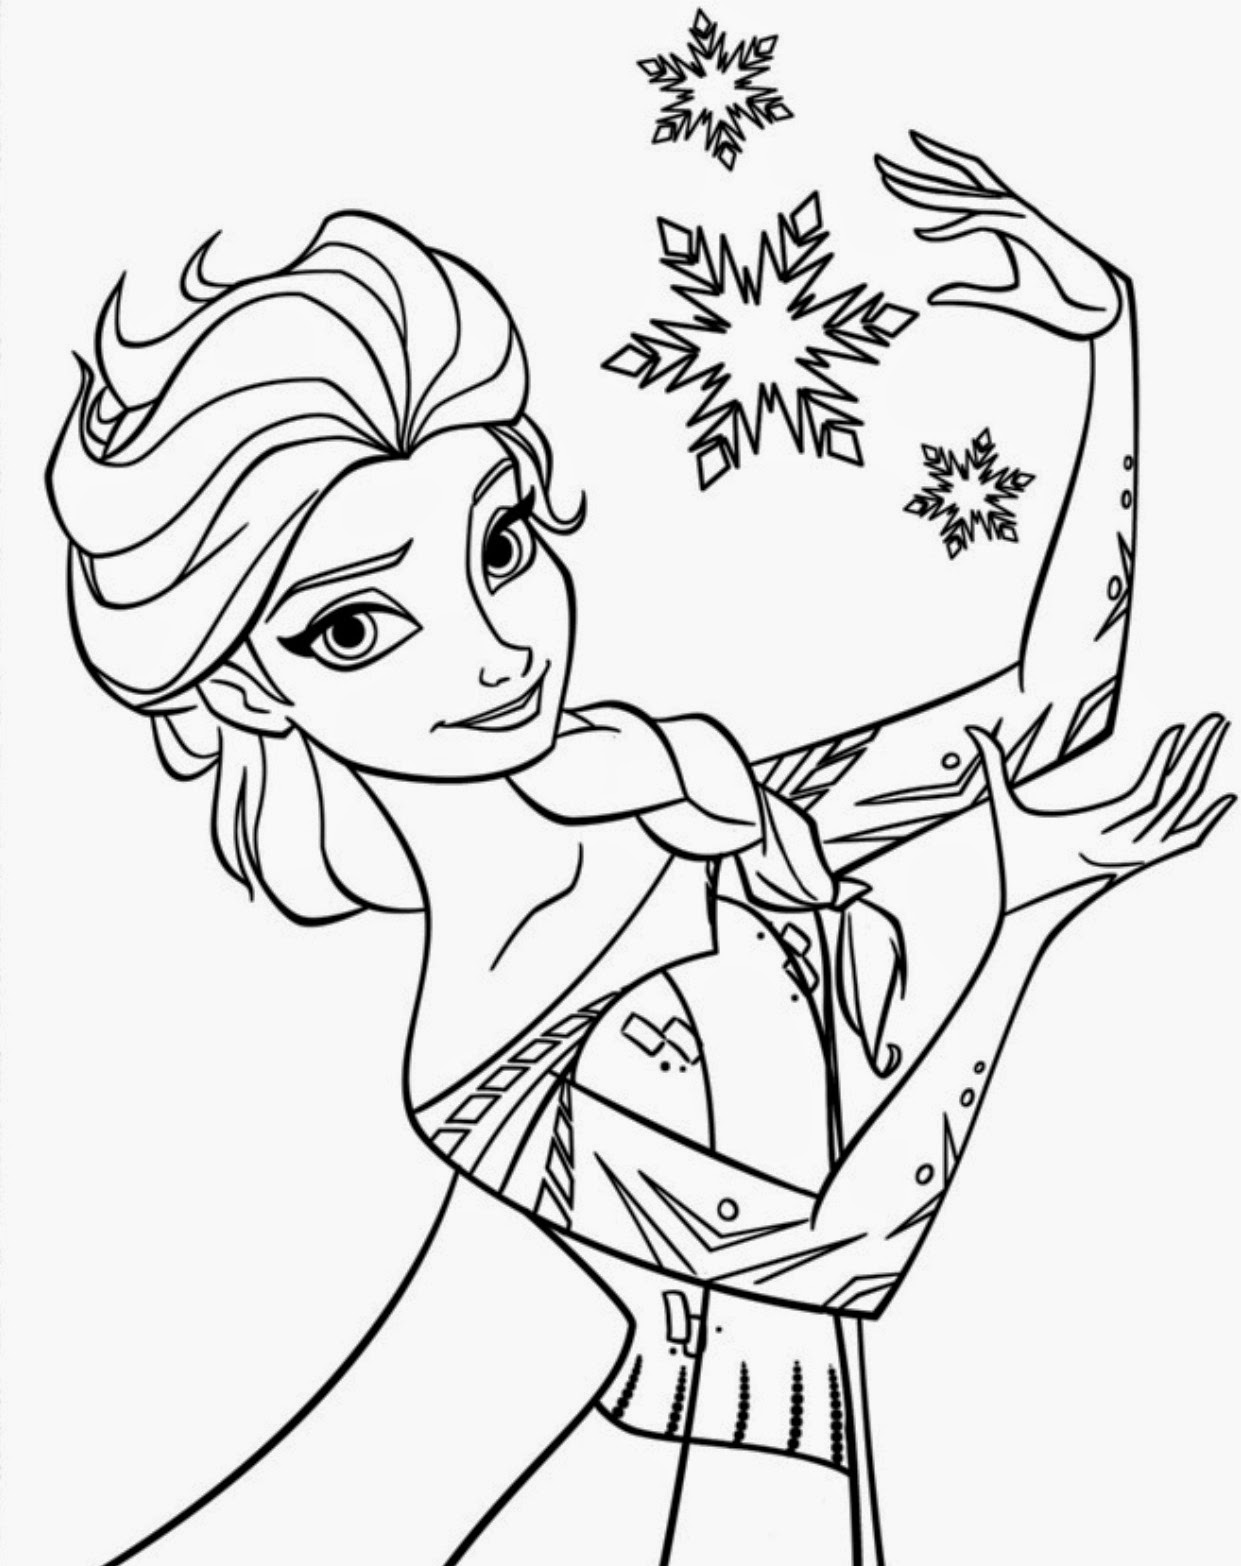 coloring pictures disney 15 beautiful disney frozen coloring pages free instant pictures disney coloring